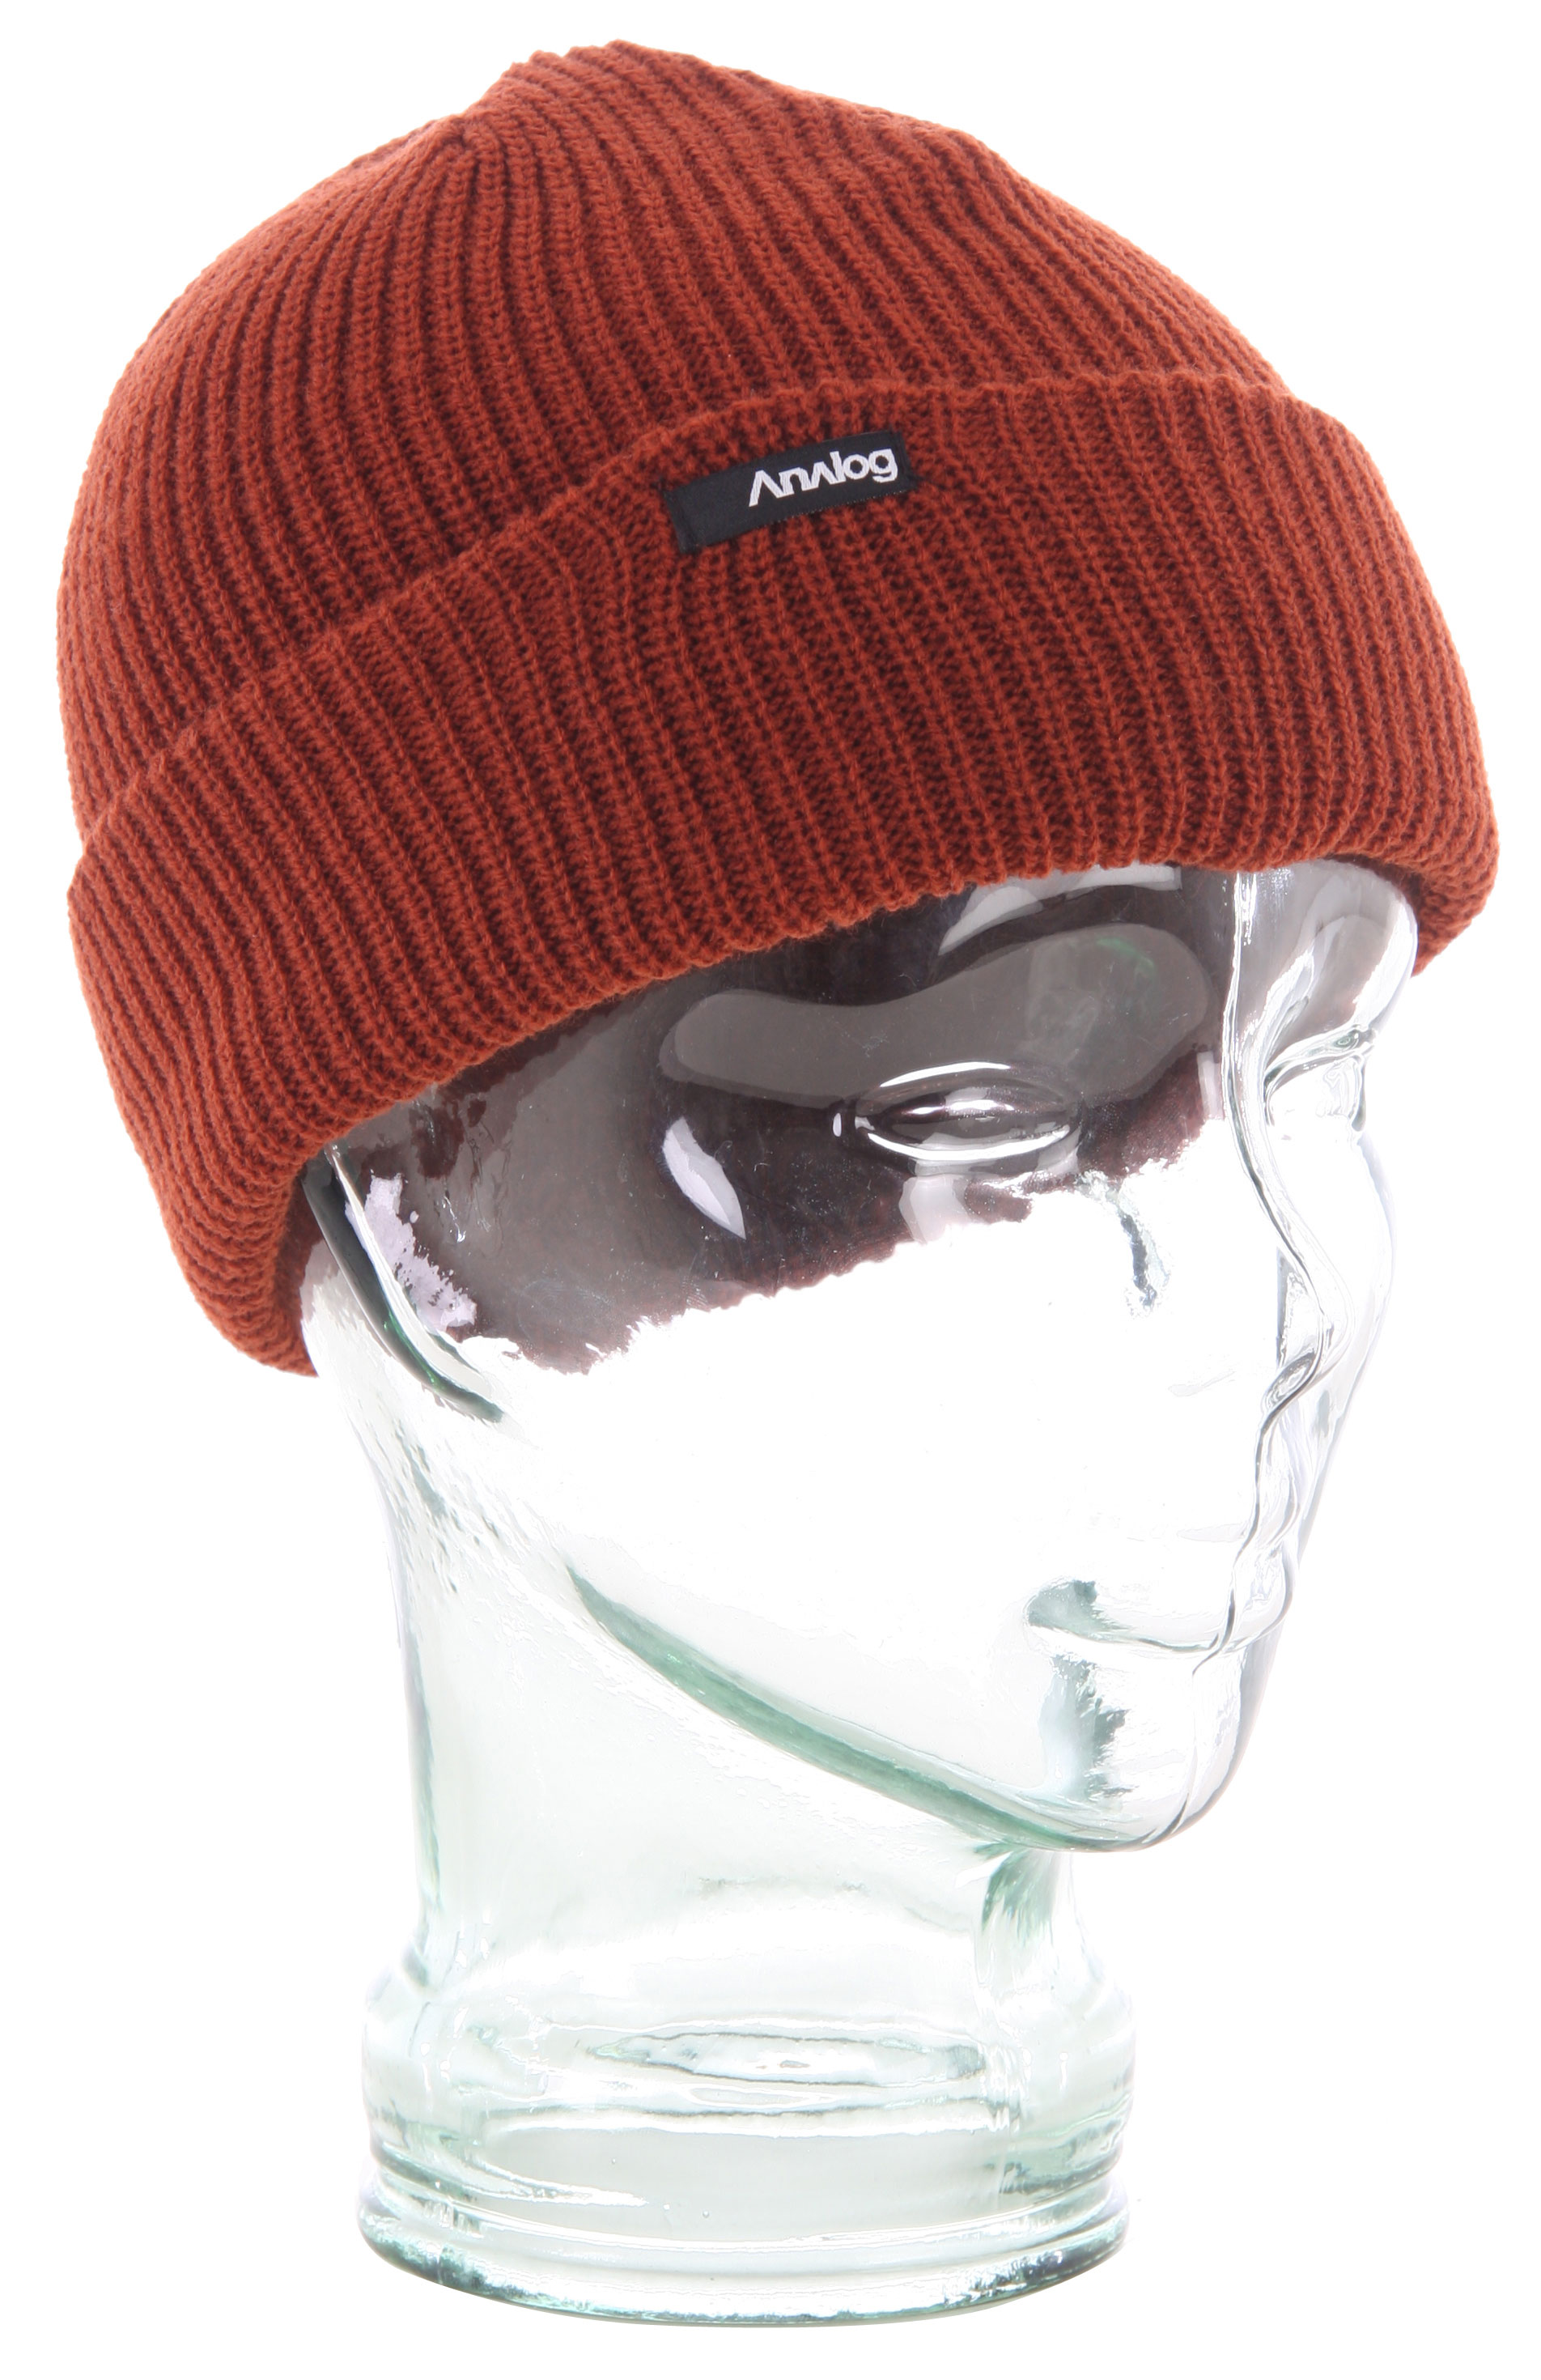 Lets stay warm this season with the Analog Beanie. Made with 100% acrylic, be sure to keep your head extra warm during the brutal cold winter. With its burglar fit, its classic design is simple featuring a solid color with a small logo embroidery. Wear it with your favorite winter coat and you're ready to hit the snowy winter.Key Features of the Analog Beanie: 100% acrylic Burglar fit - $16.95